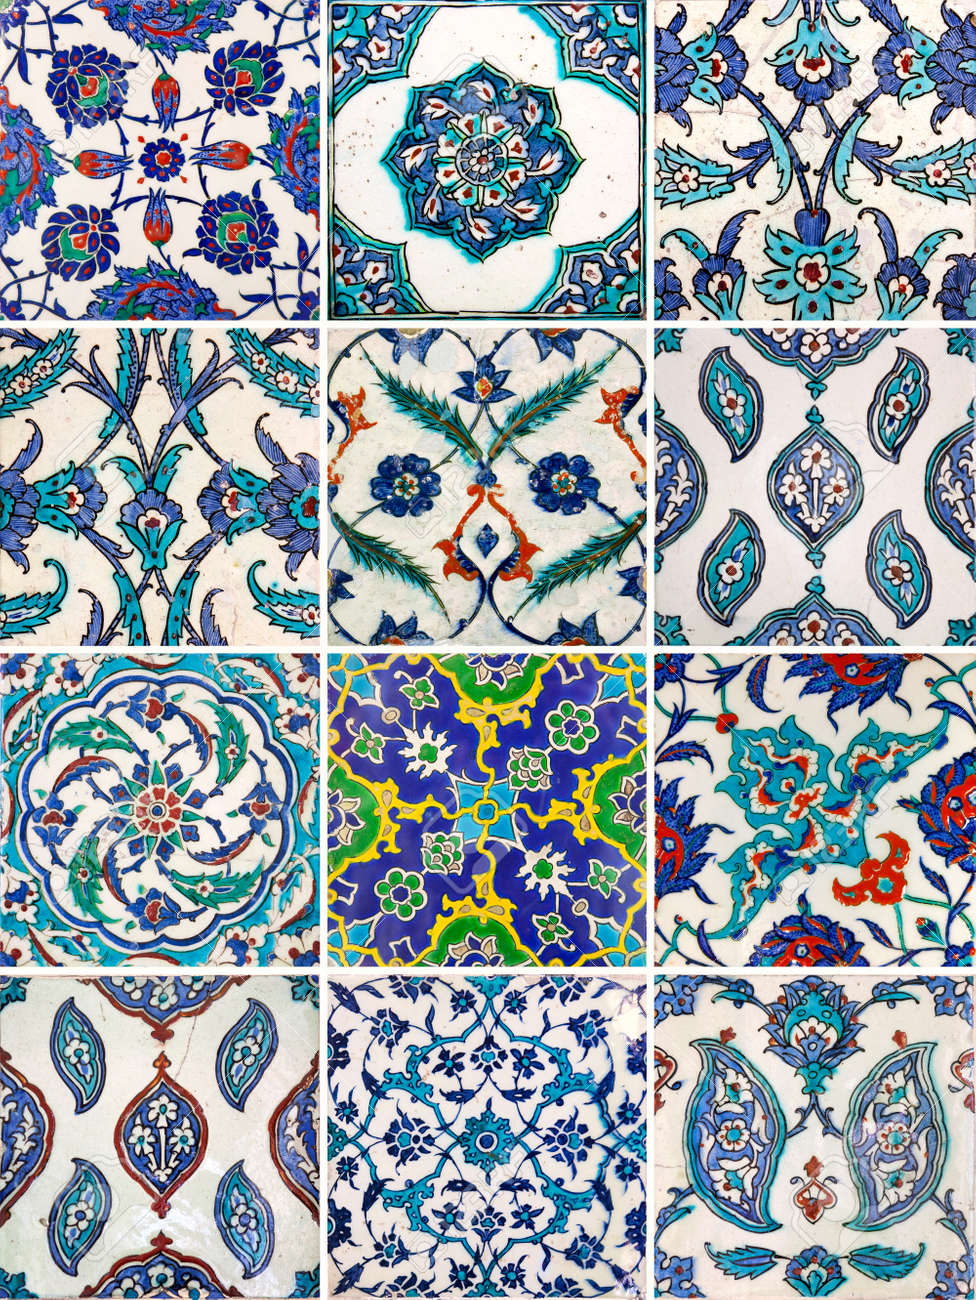 Set of ancient traditional handmade tiles more than 200 years set of ancient traditional handmade tiles more than 200 years collection of islamic ornaments dailygadgetfo Choice Image